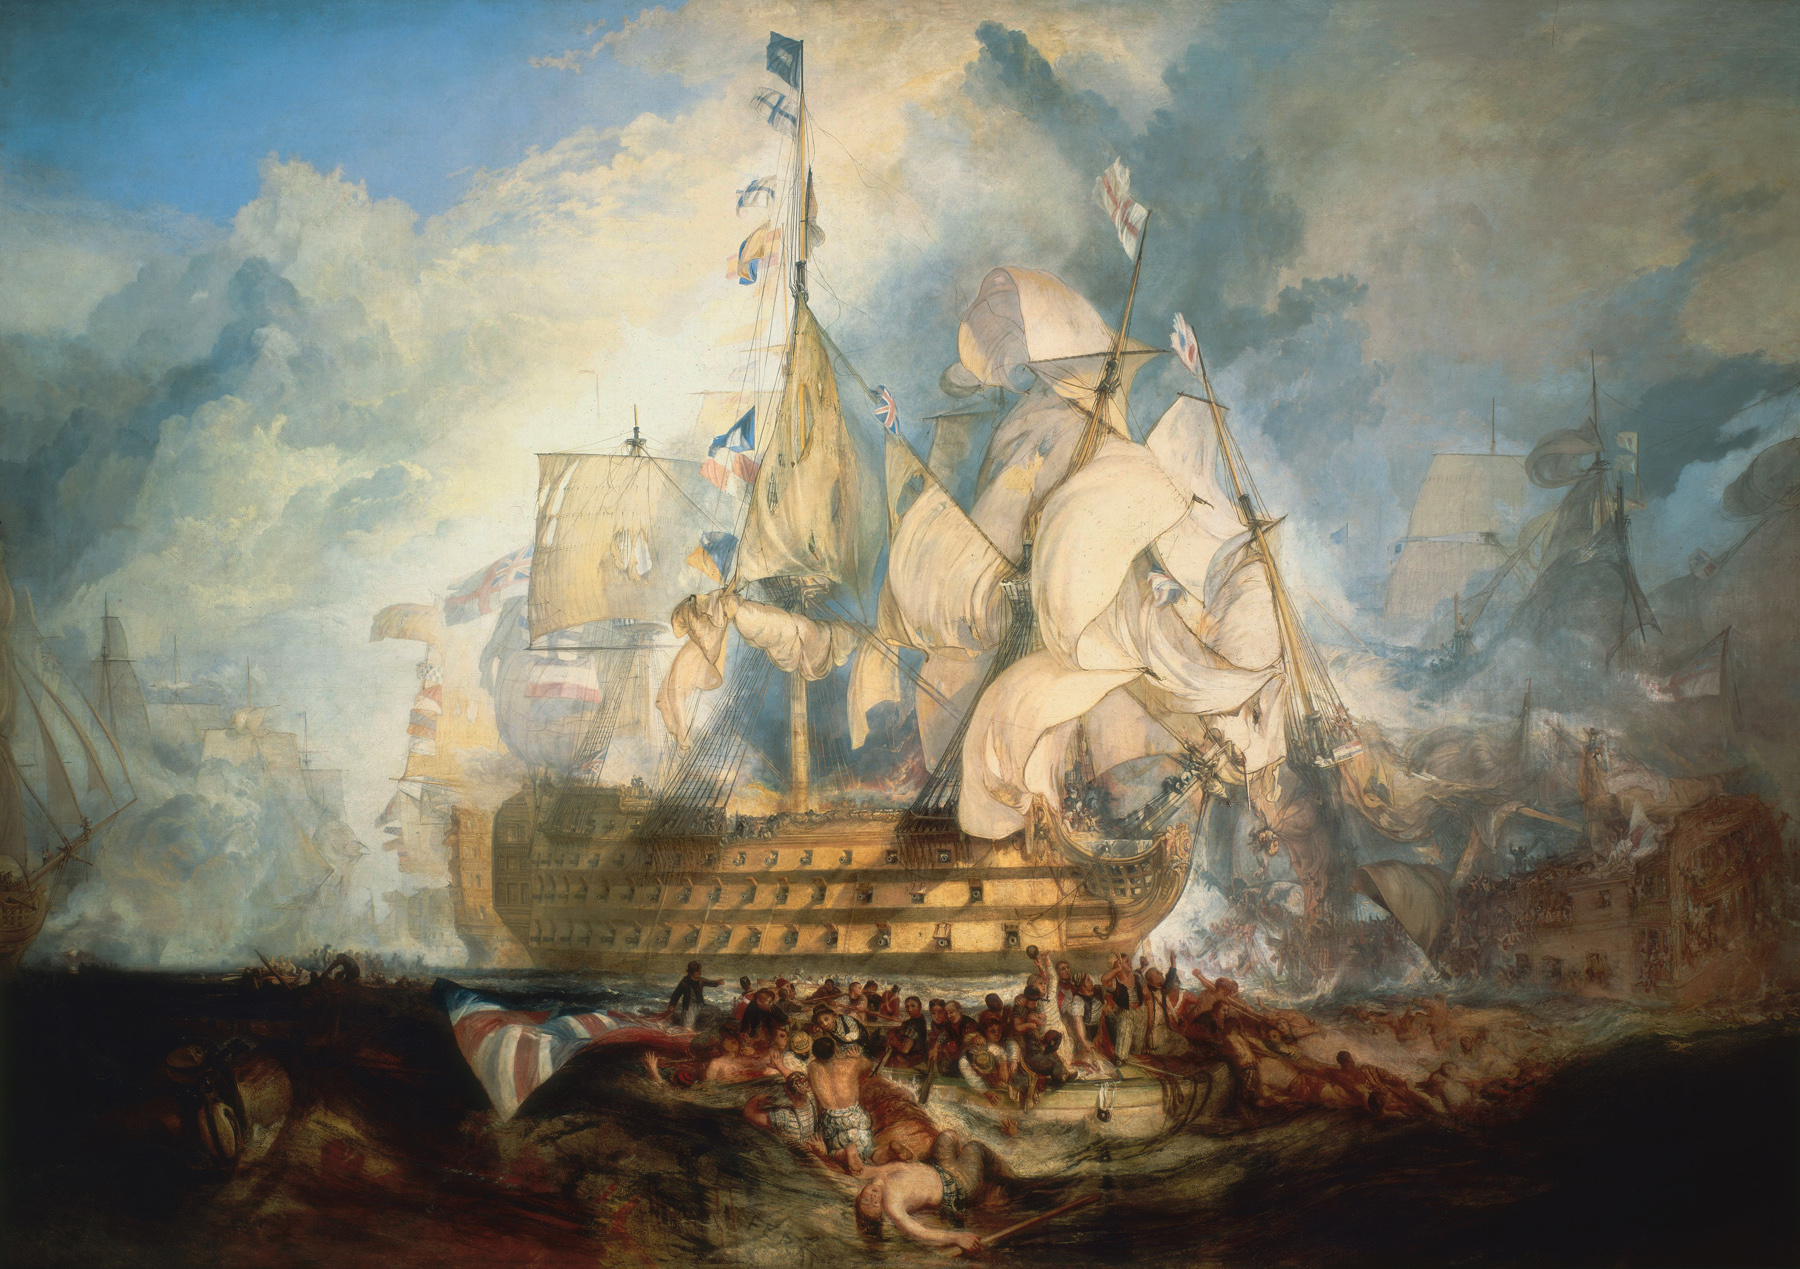 Are you like Lord Nelson, dynamically influencing deliberate events?